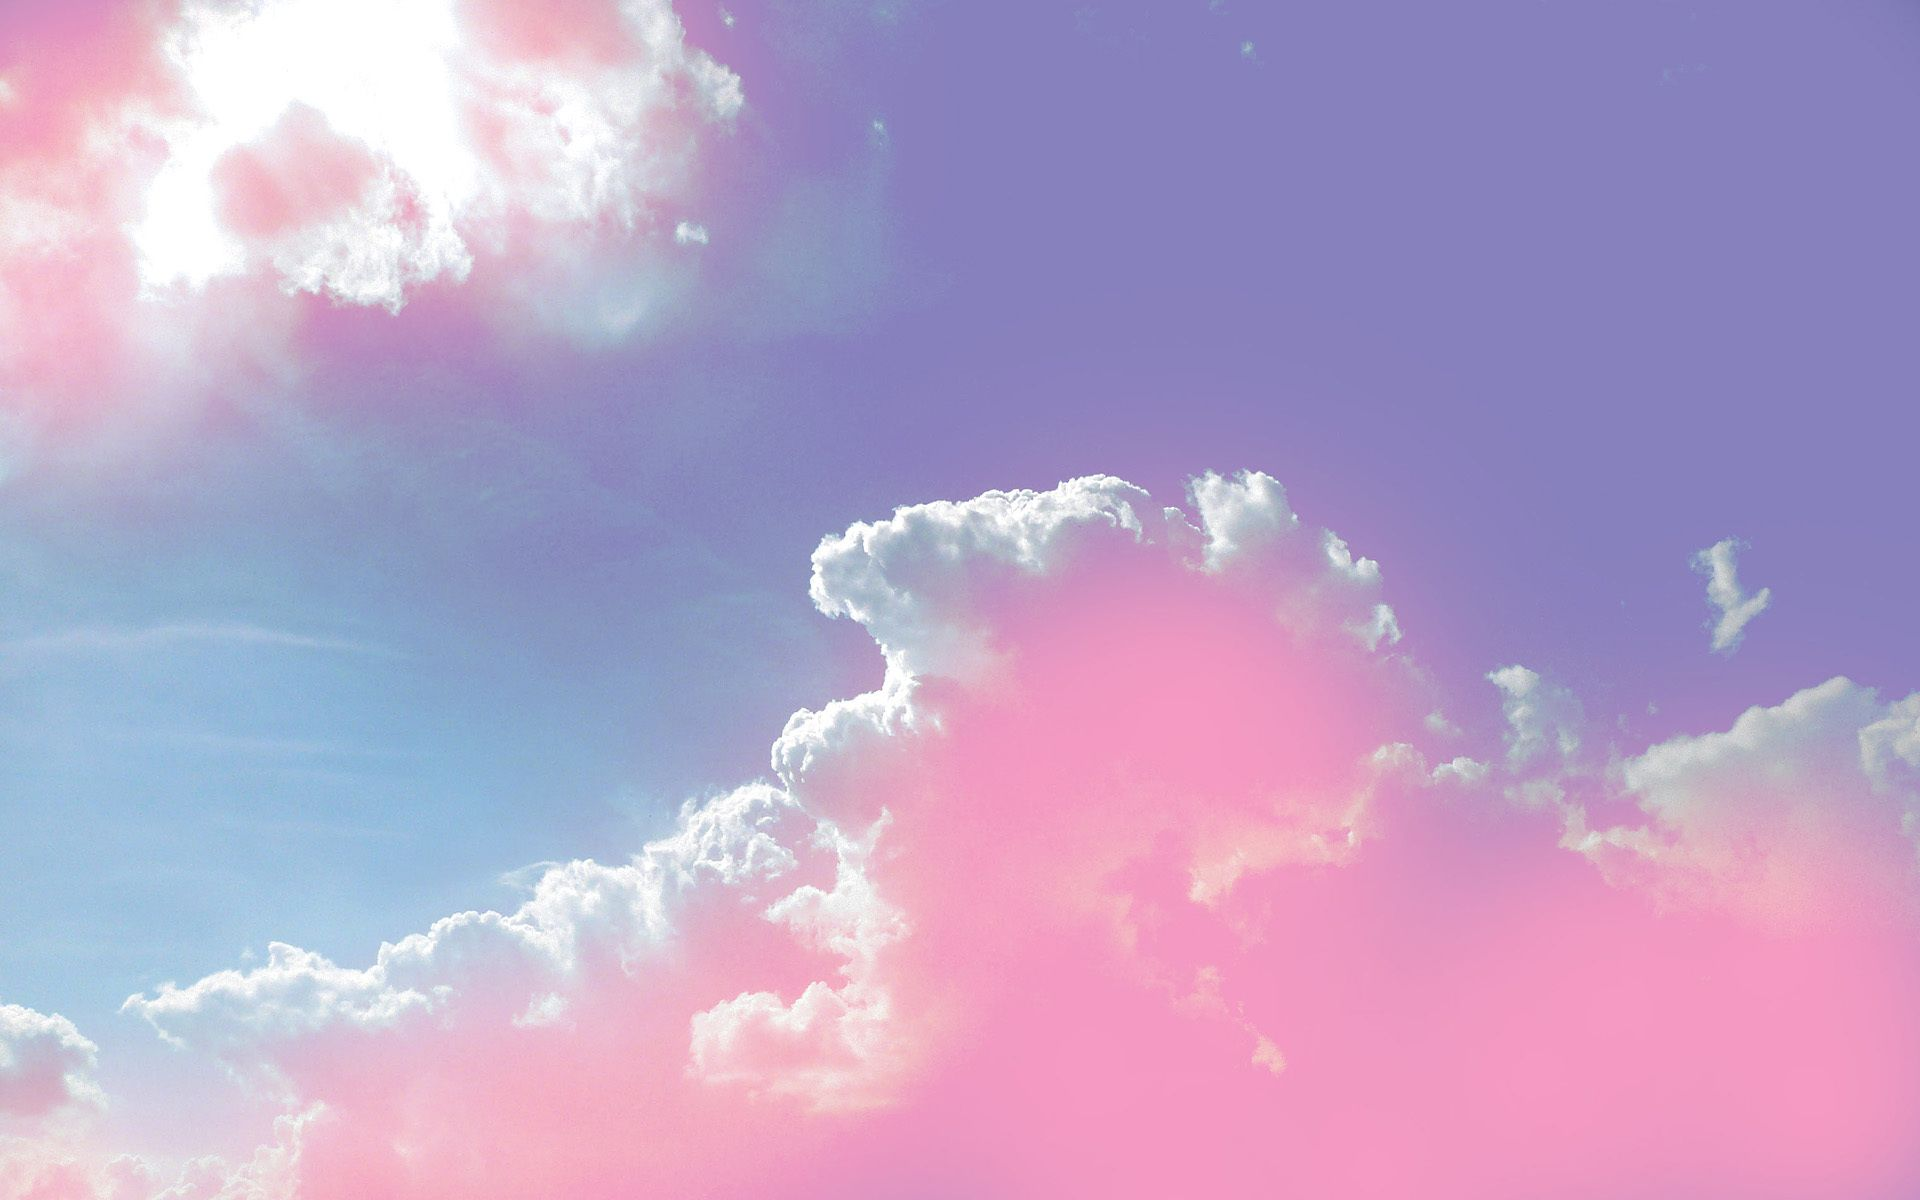 Desktop Sky Backgrounds Wallpapers Backgrounds Images Art Photos Pink Clouds Wallpaper Sky Aesthetic Cloud Wallpaper